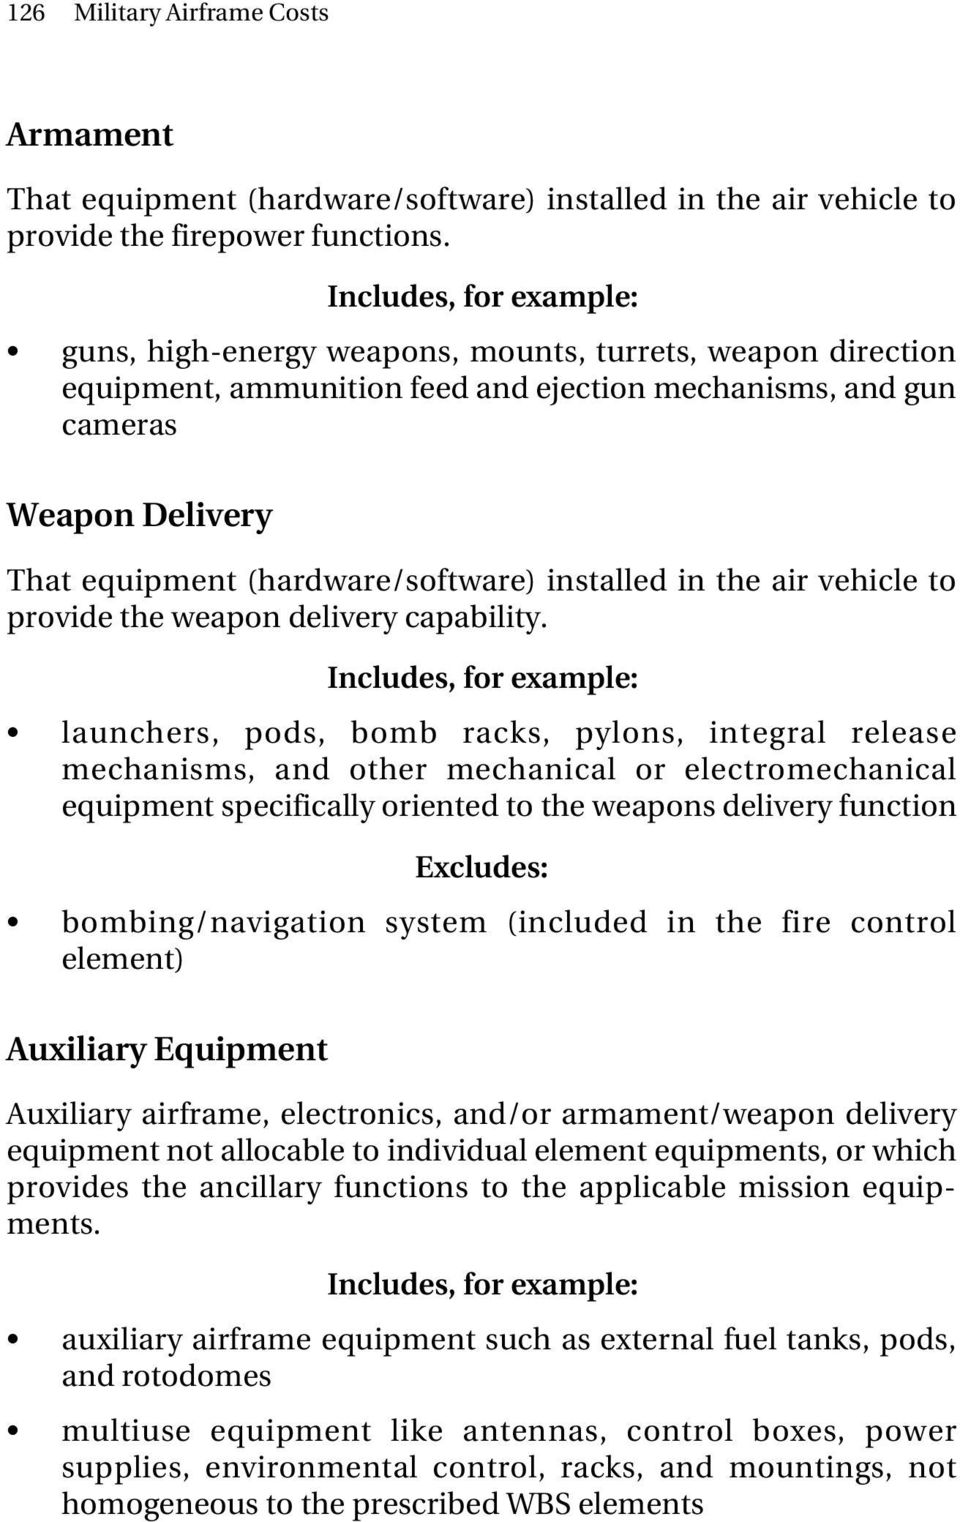 Aircraft Work Breakdown Structure Wbs Levels From Military Electrical Wire Harness Assembly Air Vehicle To Provide The Weapon Delivery Capability